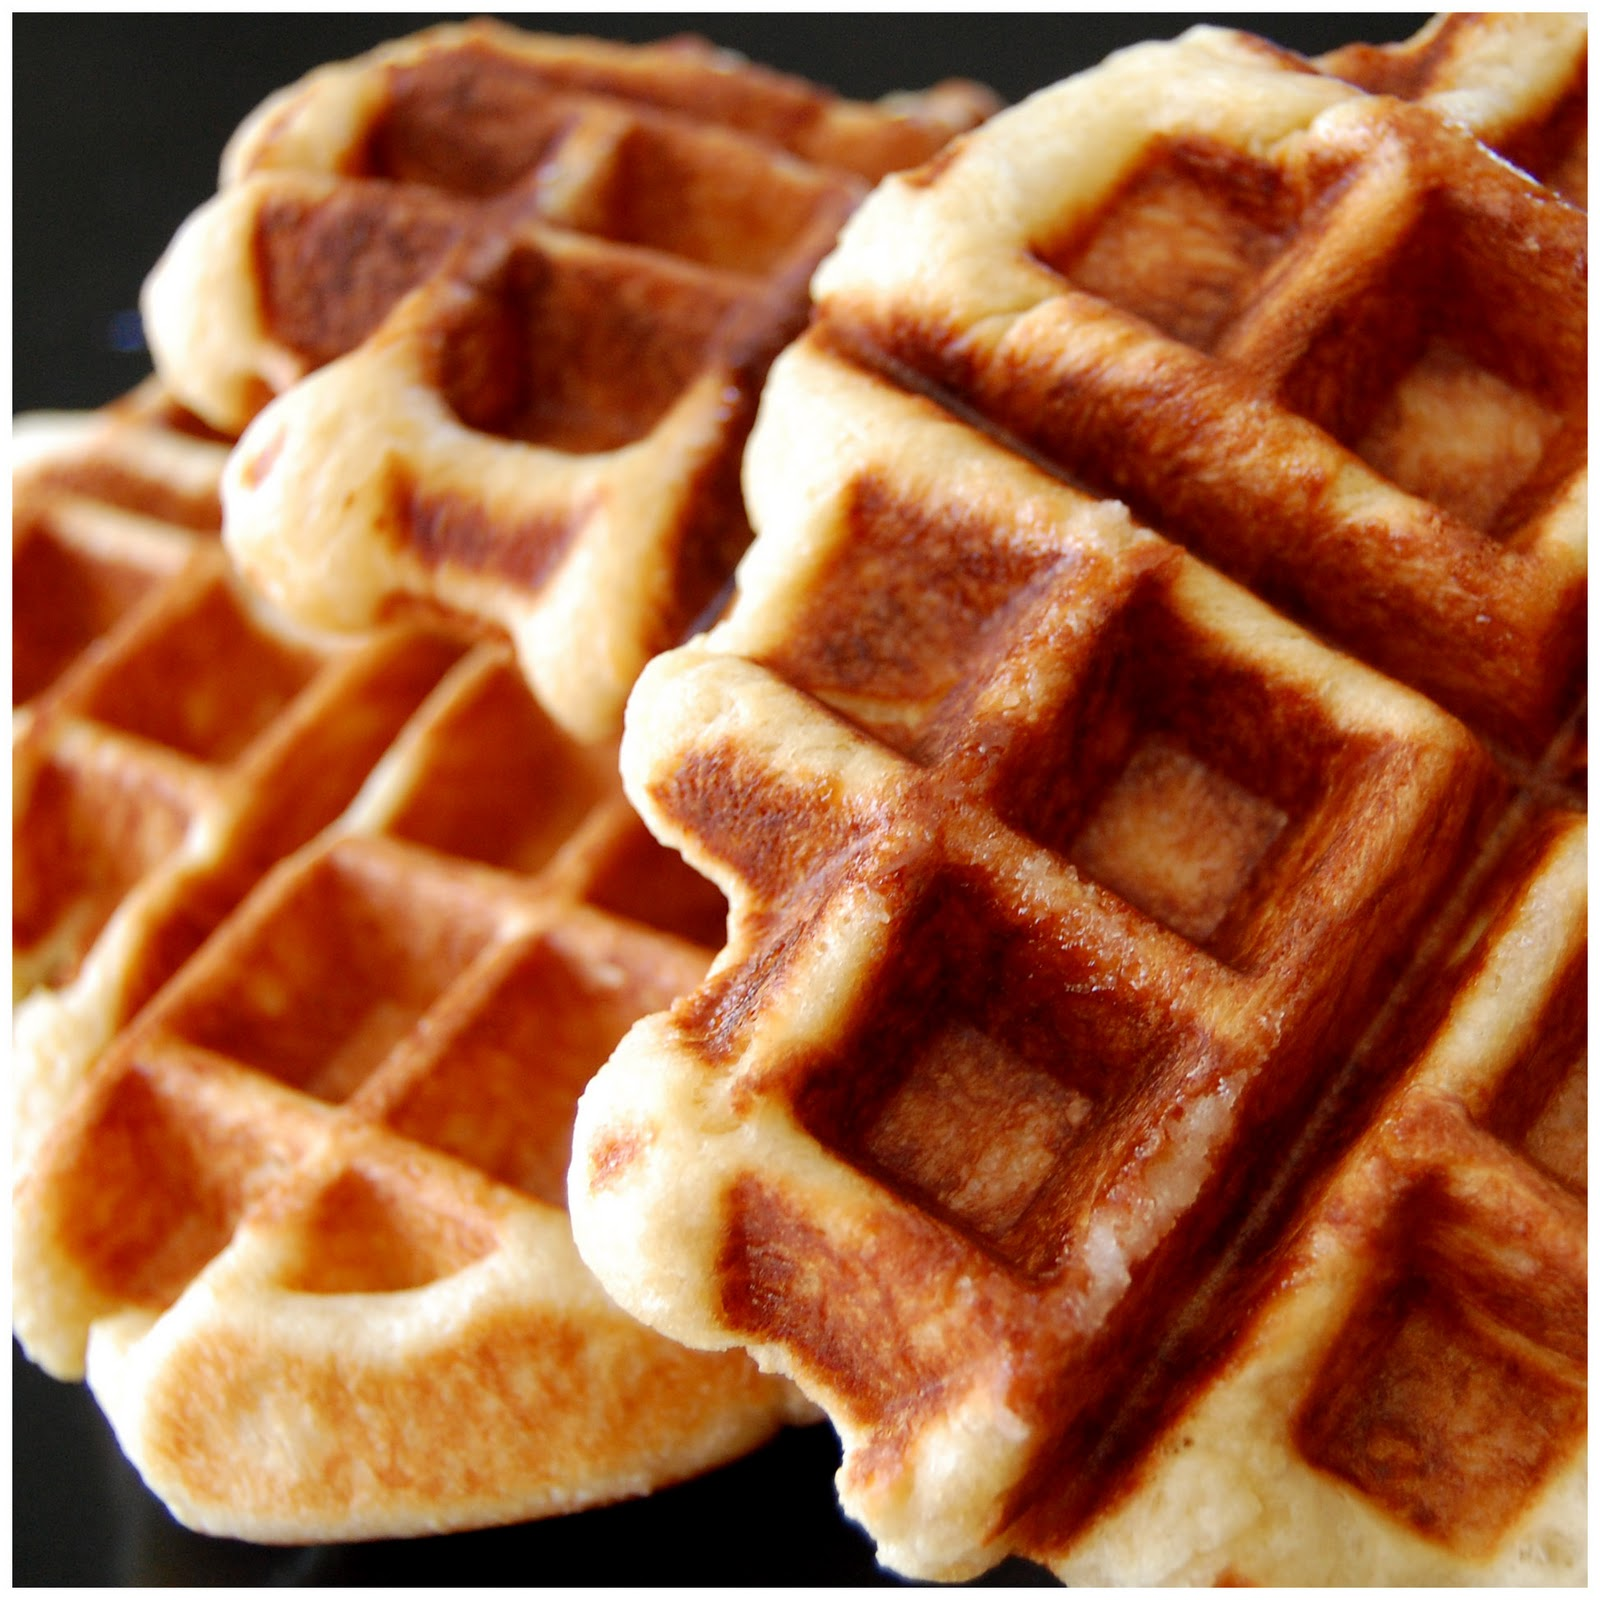 Bourbonnatrix Bakes: perfectly imperfect waffles